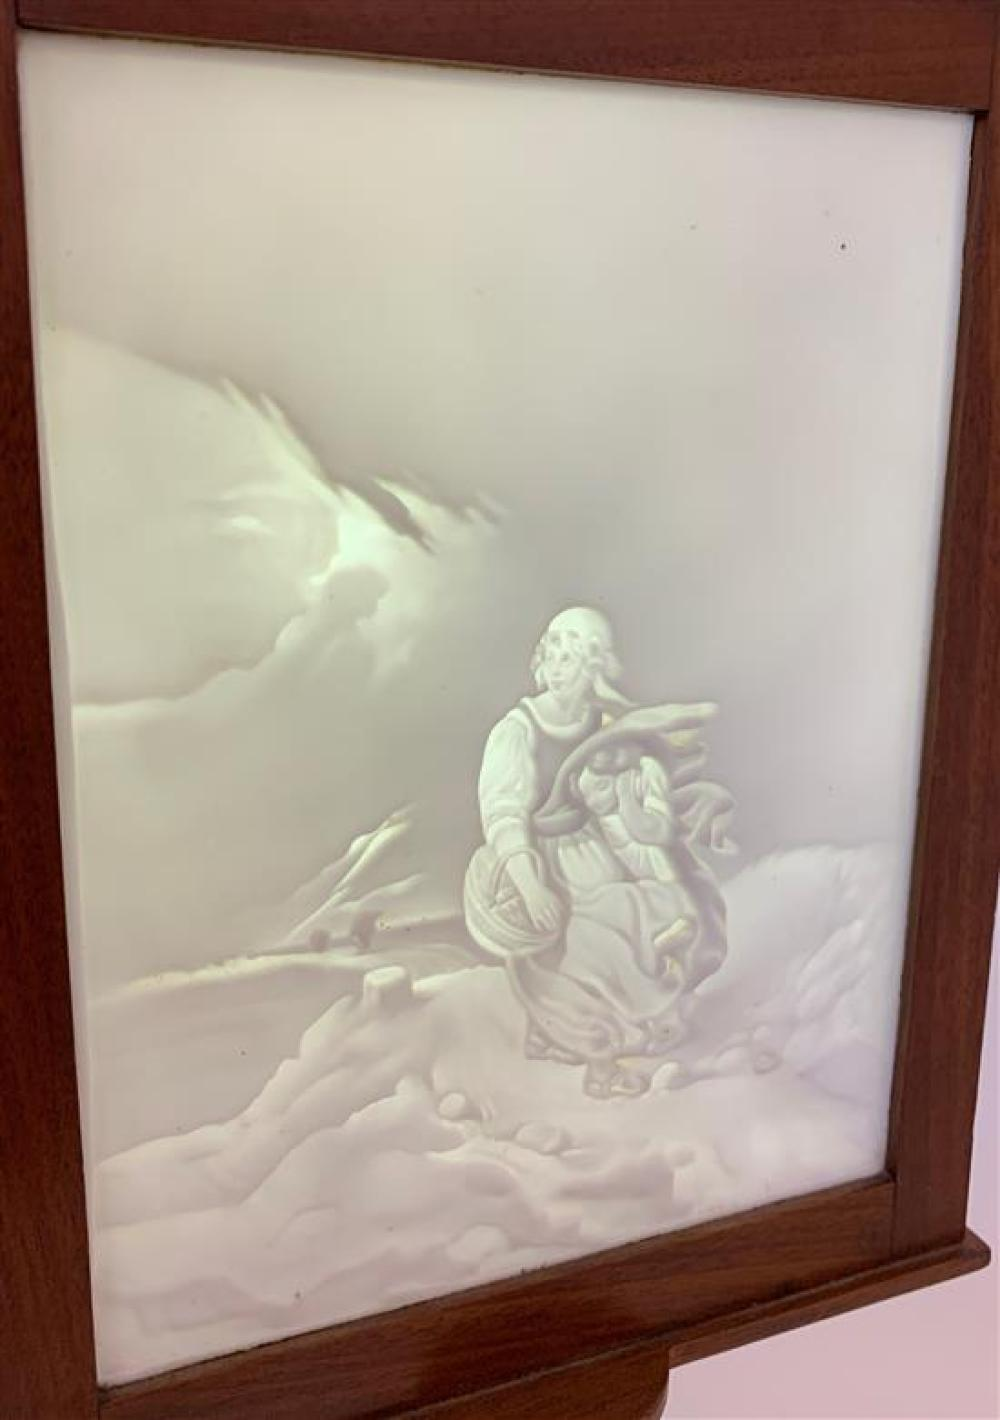 """LITHOPHANE PANEL DEPICTING MOTHER AND CHILD IN A STORM IN WOODEN FRAME, 7¼""""x 9¾"""". FRAME IS PART OF WOODEN STAND 17¾""""H"""